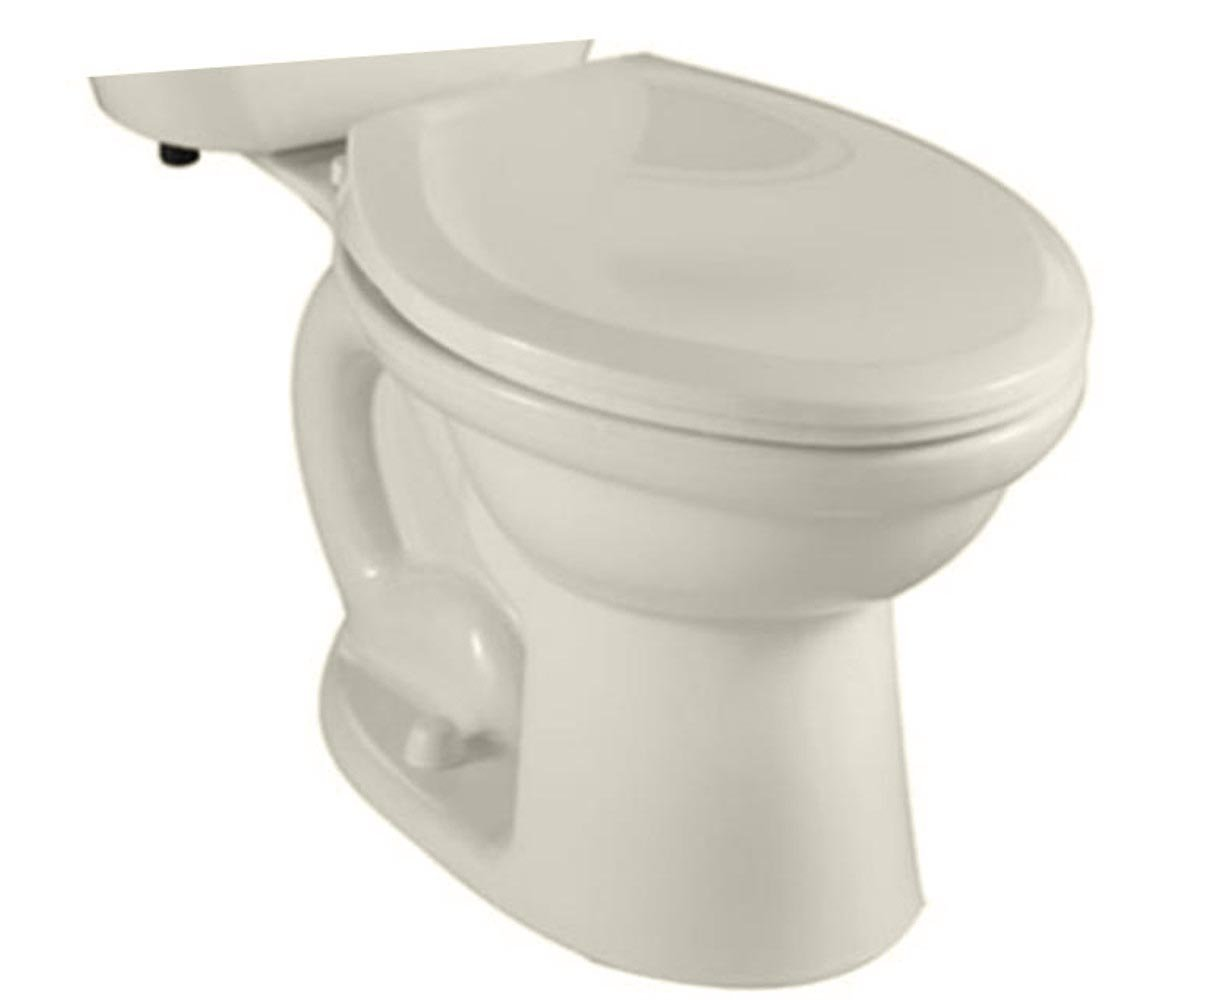 American Standard 3189.016.222 Colony FitRight Elongated Toilet Bowl, Linen (Bowl Only)